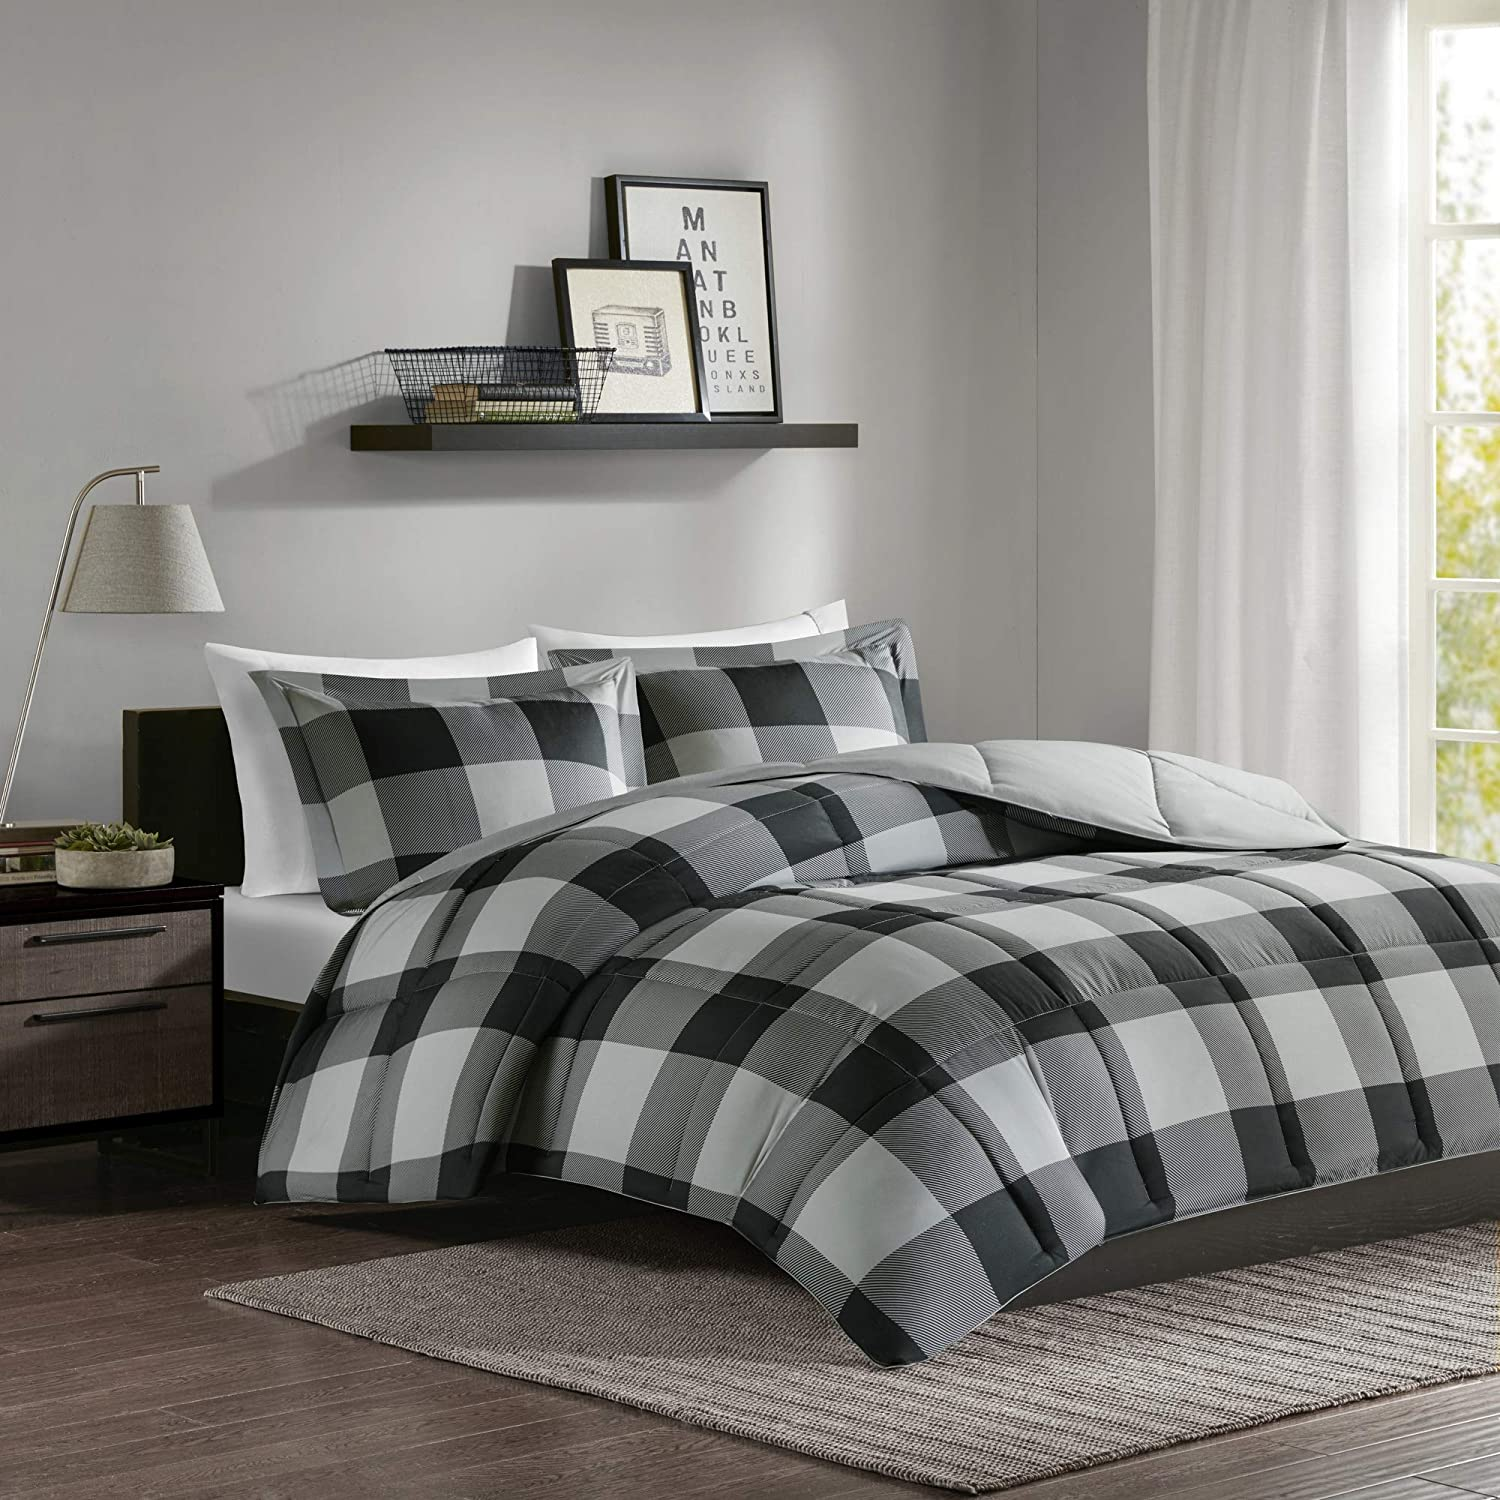 Madison Park Essentials Plaid Comforter Set Bedding Sets Modern All Season Bedding Set with Matching Sham, Full/Queen, Grey/Black